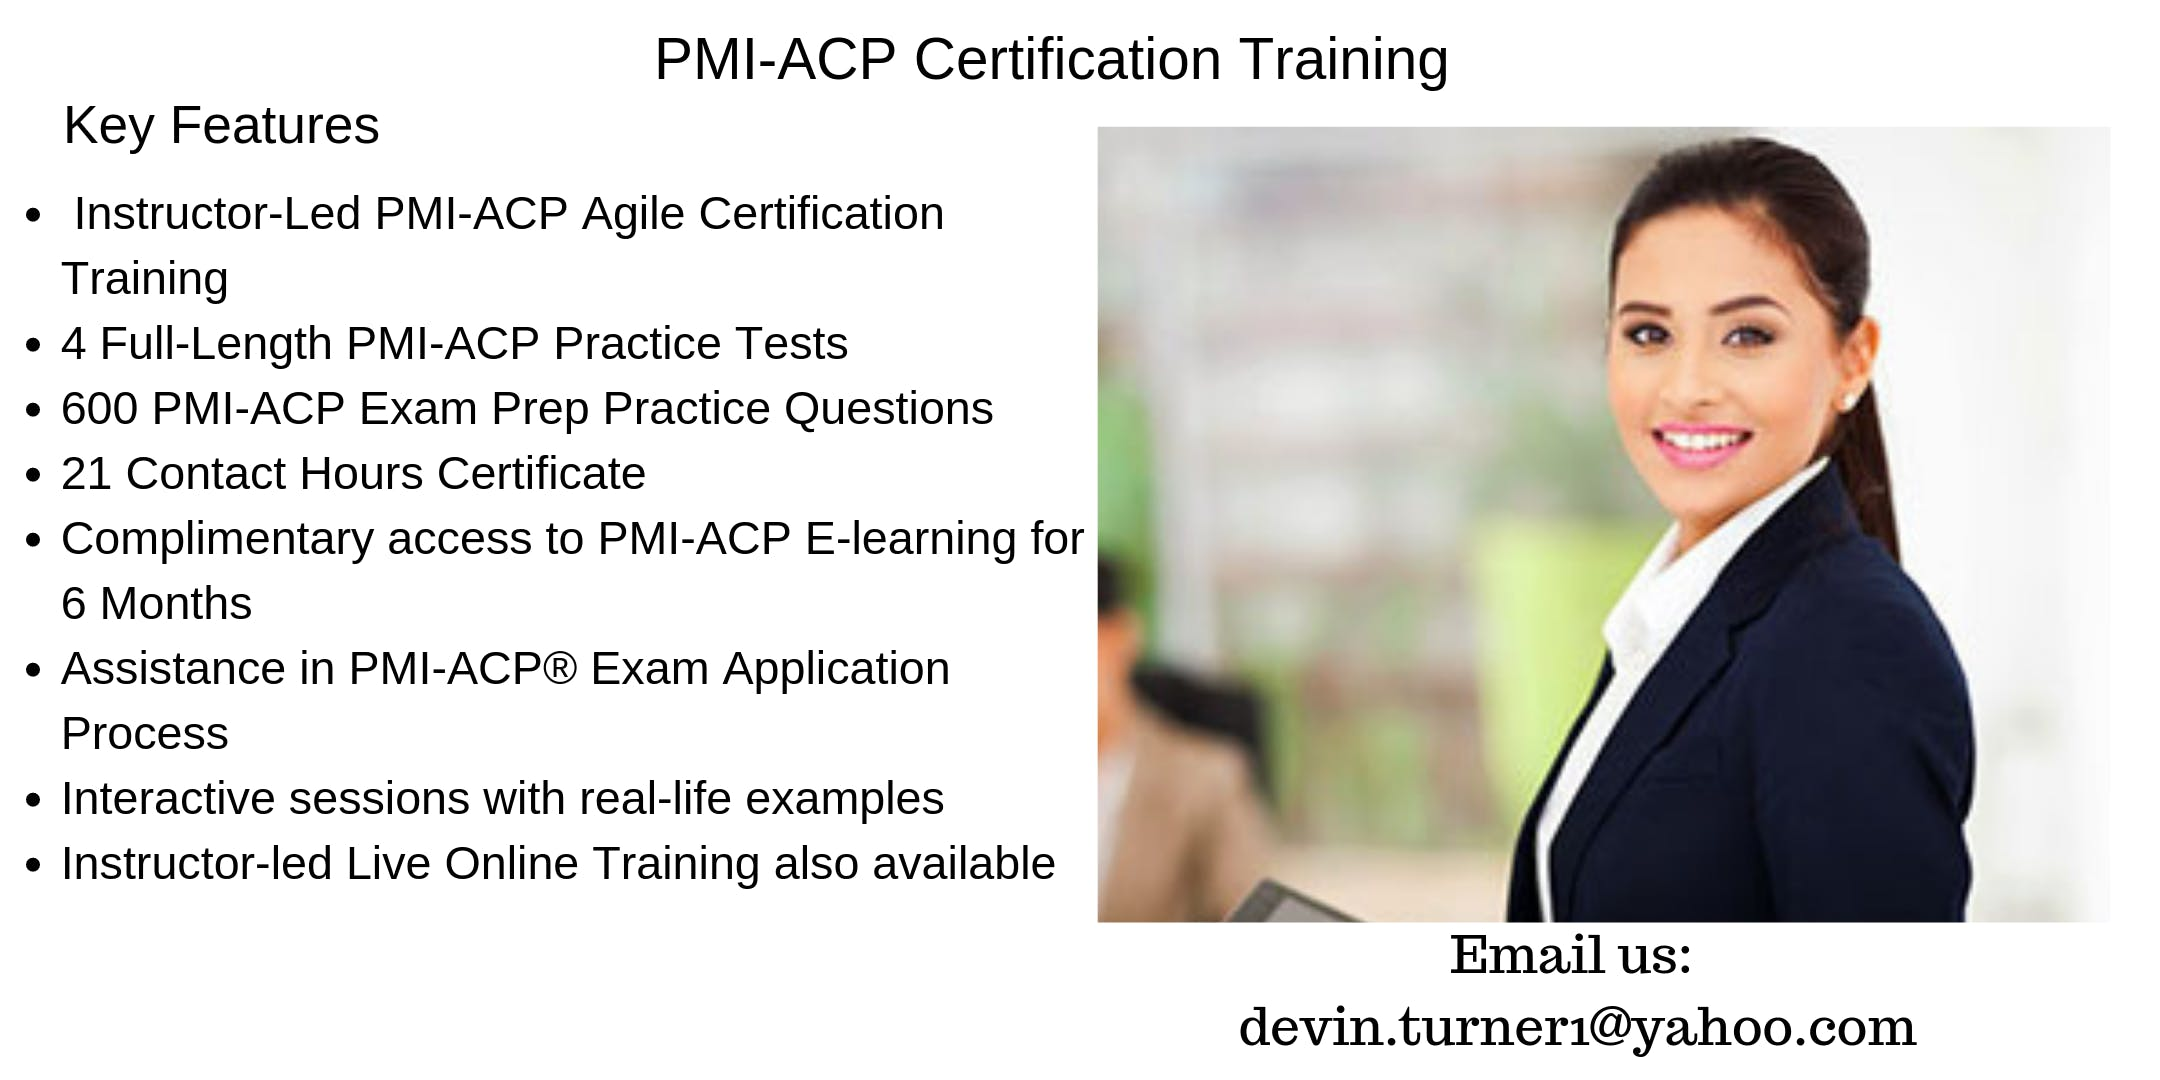 PMI-ACP Certification Training in Fredericton, NB